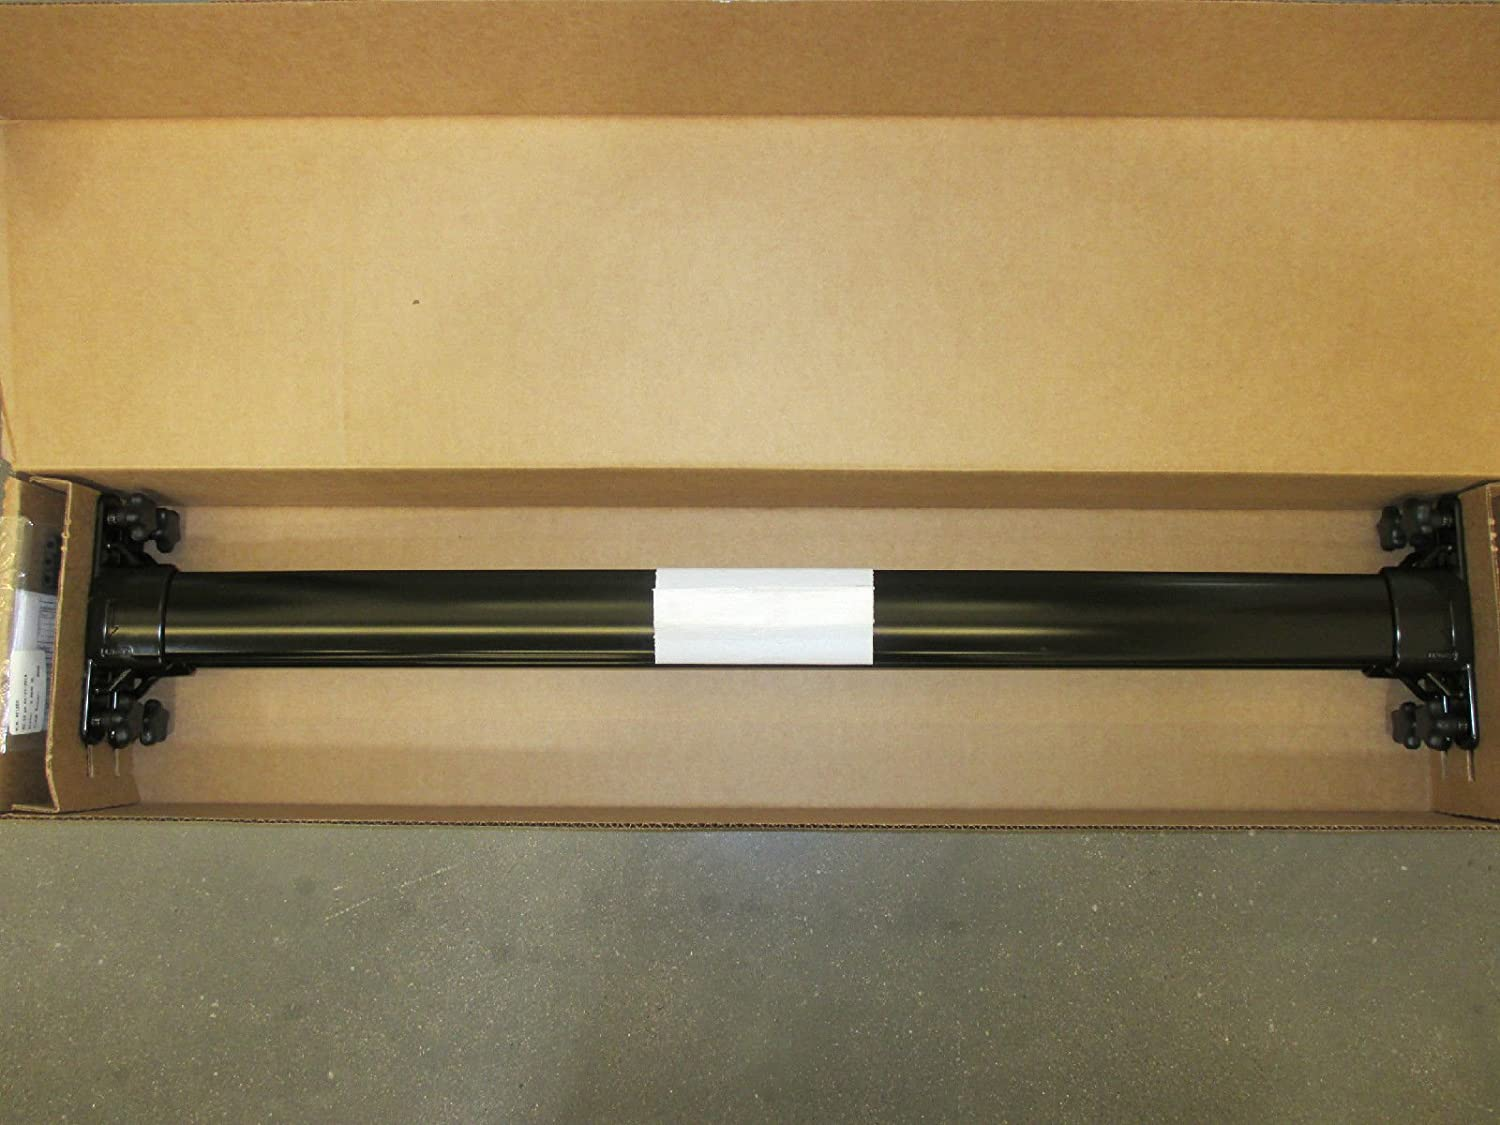 LEXUS OEM FACTORY ROOF RACK CROSS BAR SET 2010-2015 RX350 RX450H